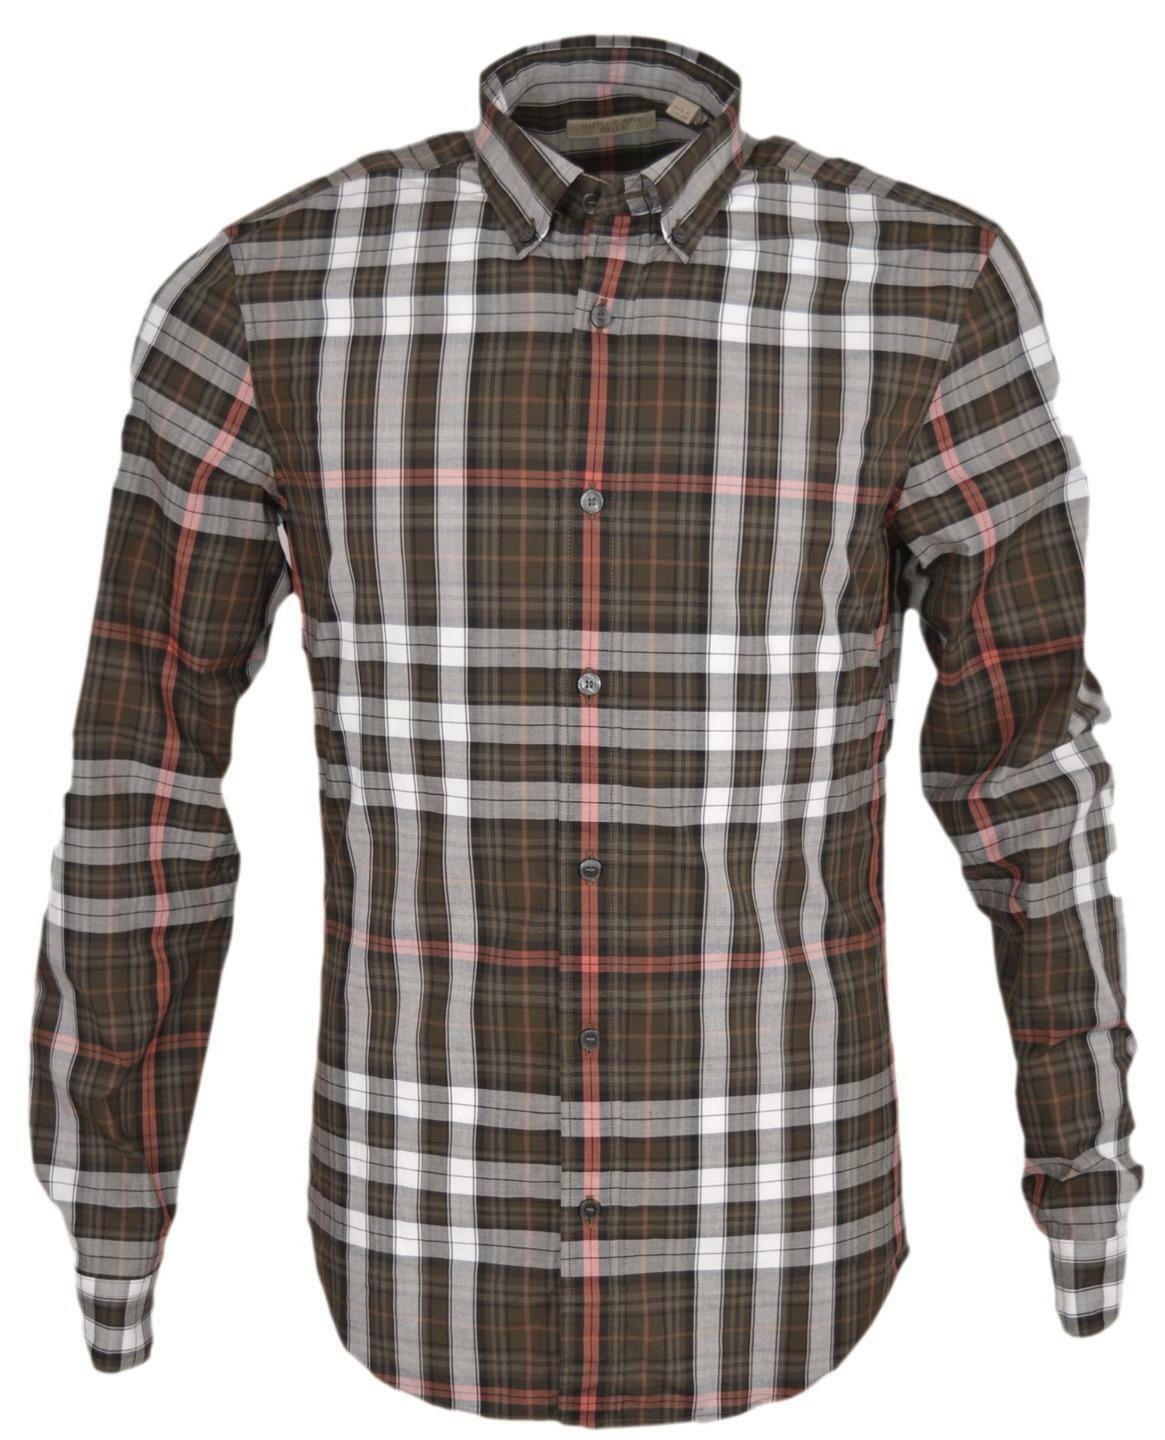 7f6ee0f449f2 Burberry Brit Men s Fred Khaki Nova Check Cotton Long Sleeve Shirt Small  for sale online